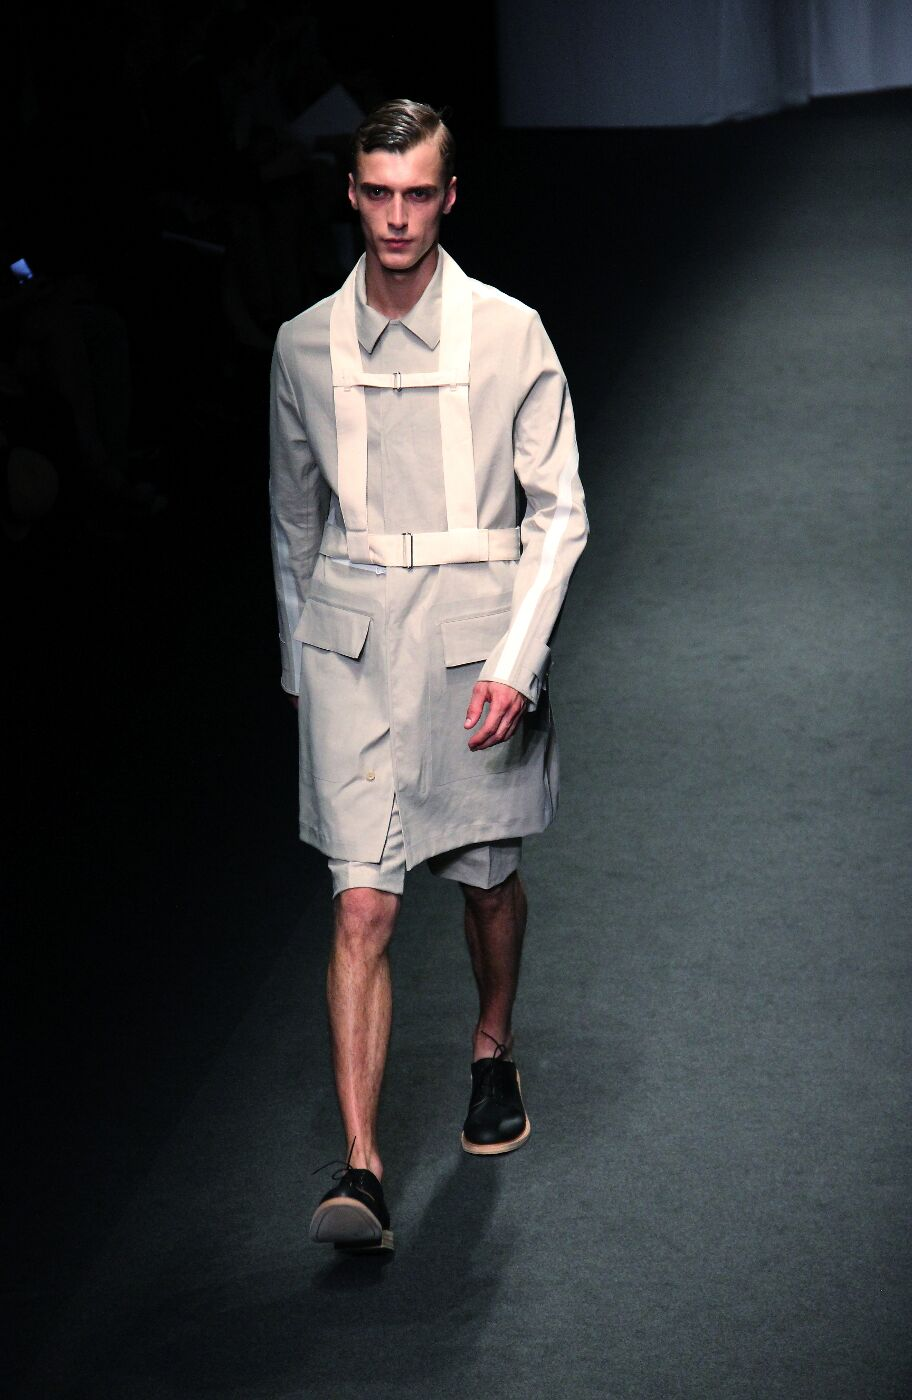 nicole-farhi-spring-summer-2012-men-collection-milano-fashion-week-2012-nicole-farhi-primavera-estate-catwalk-2012